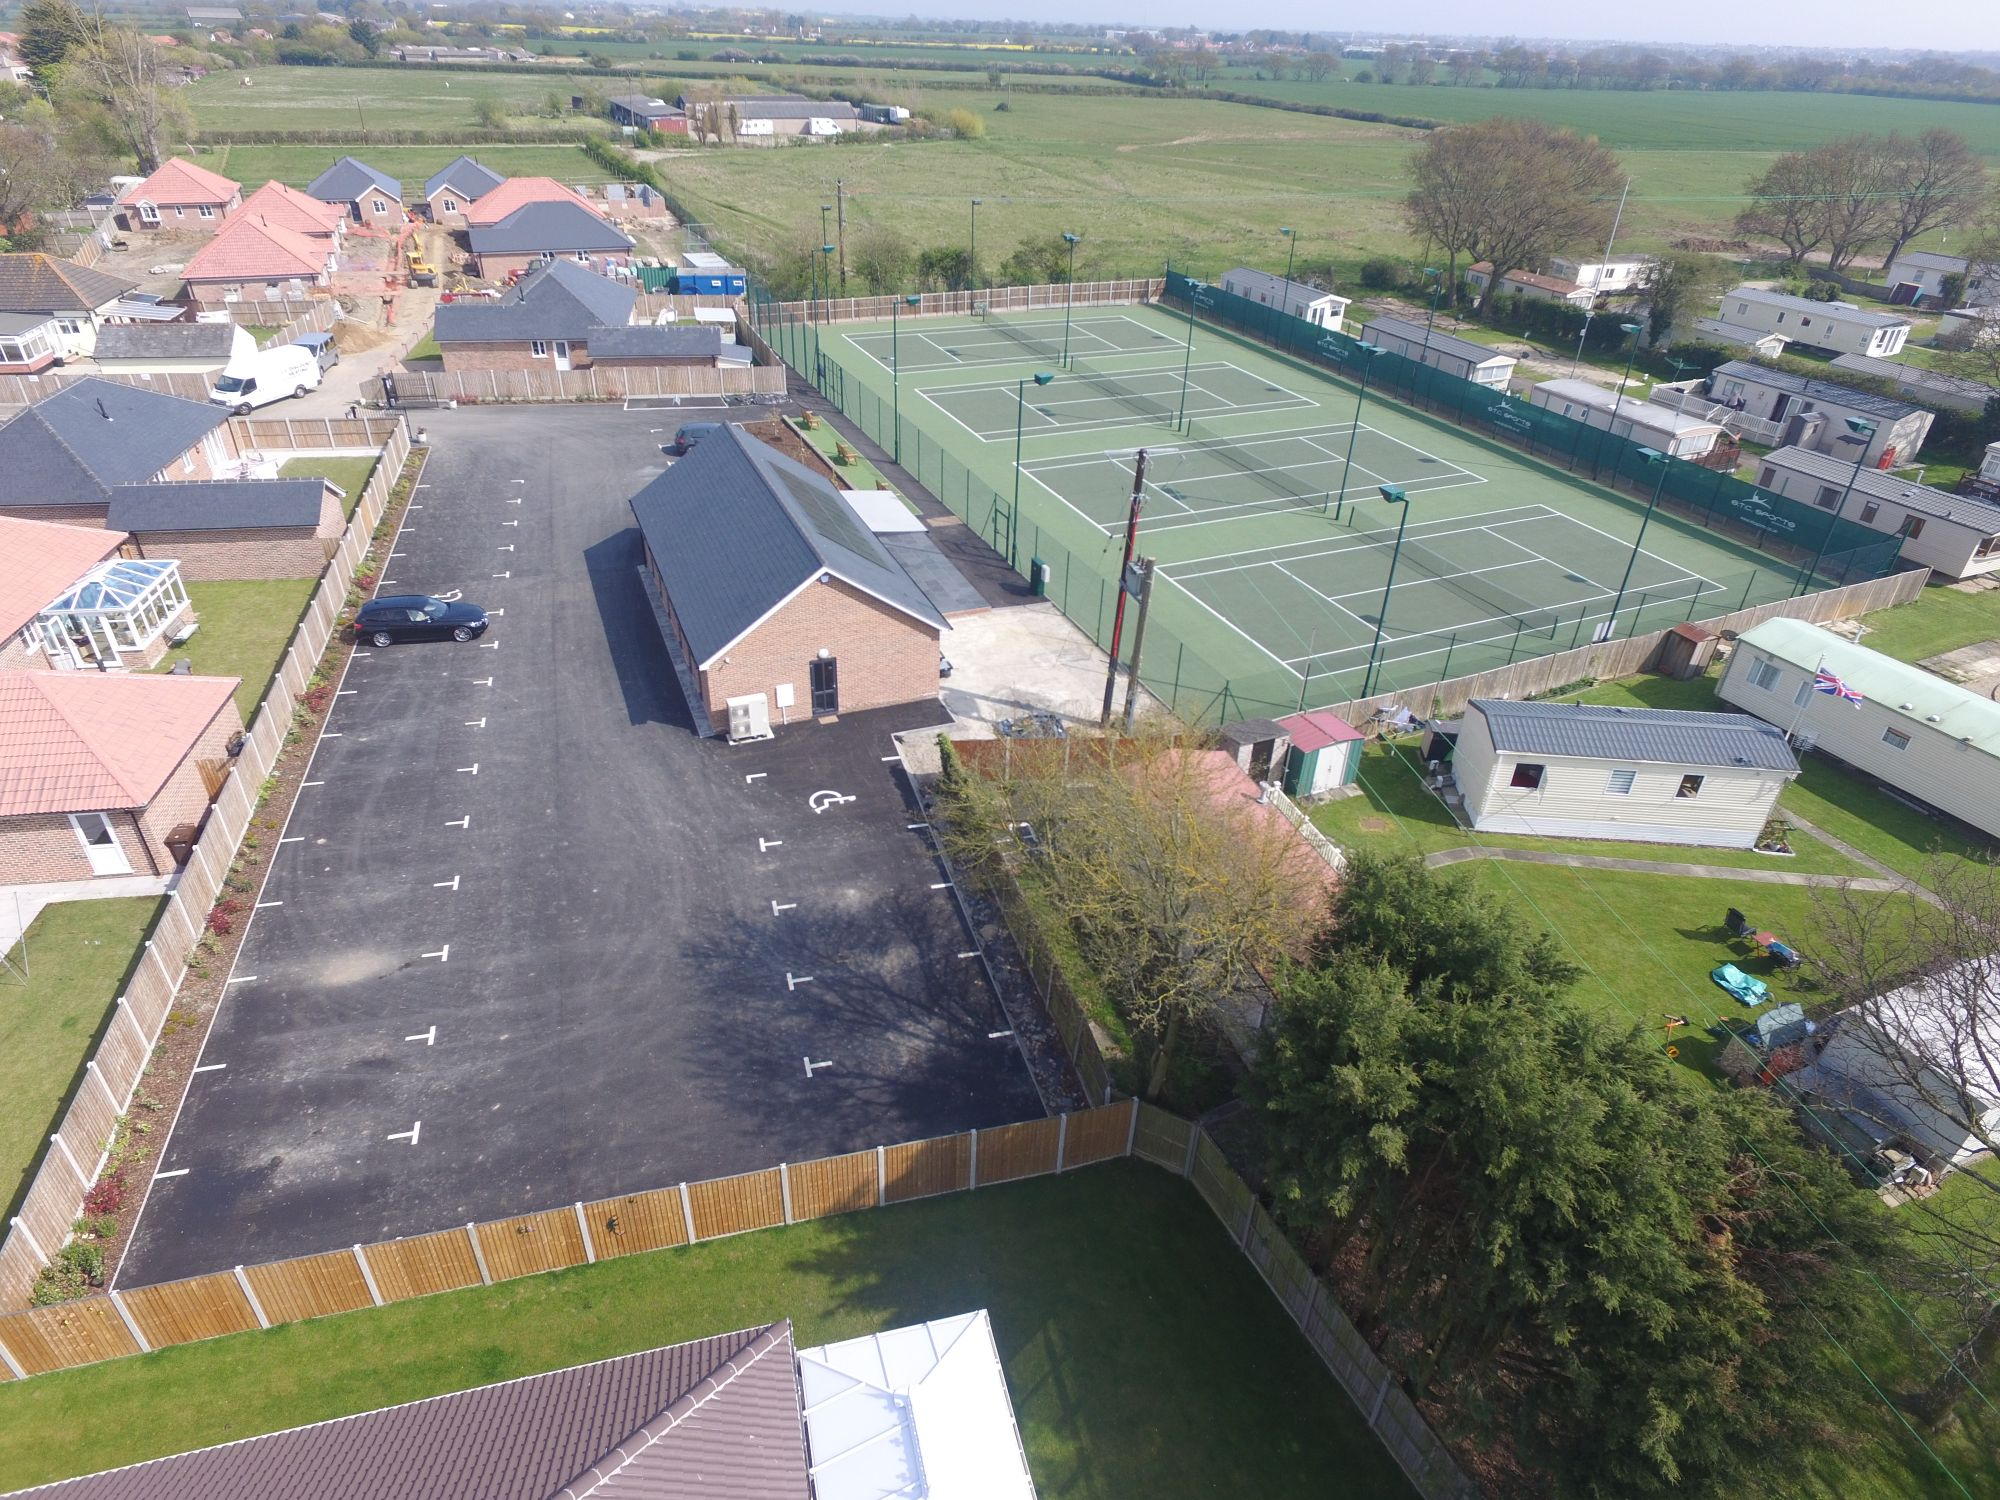 ETC Sports Surfaces collaborated with all project sub-contractors to maximise disability access to these new hard tennis courts